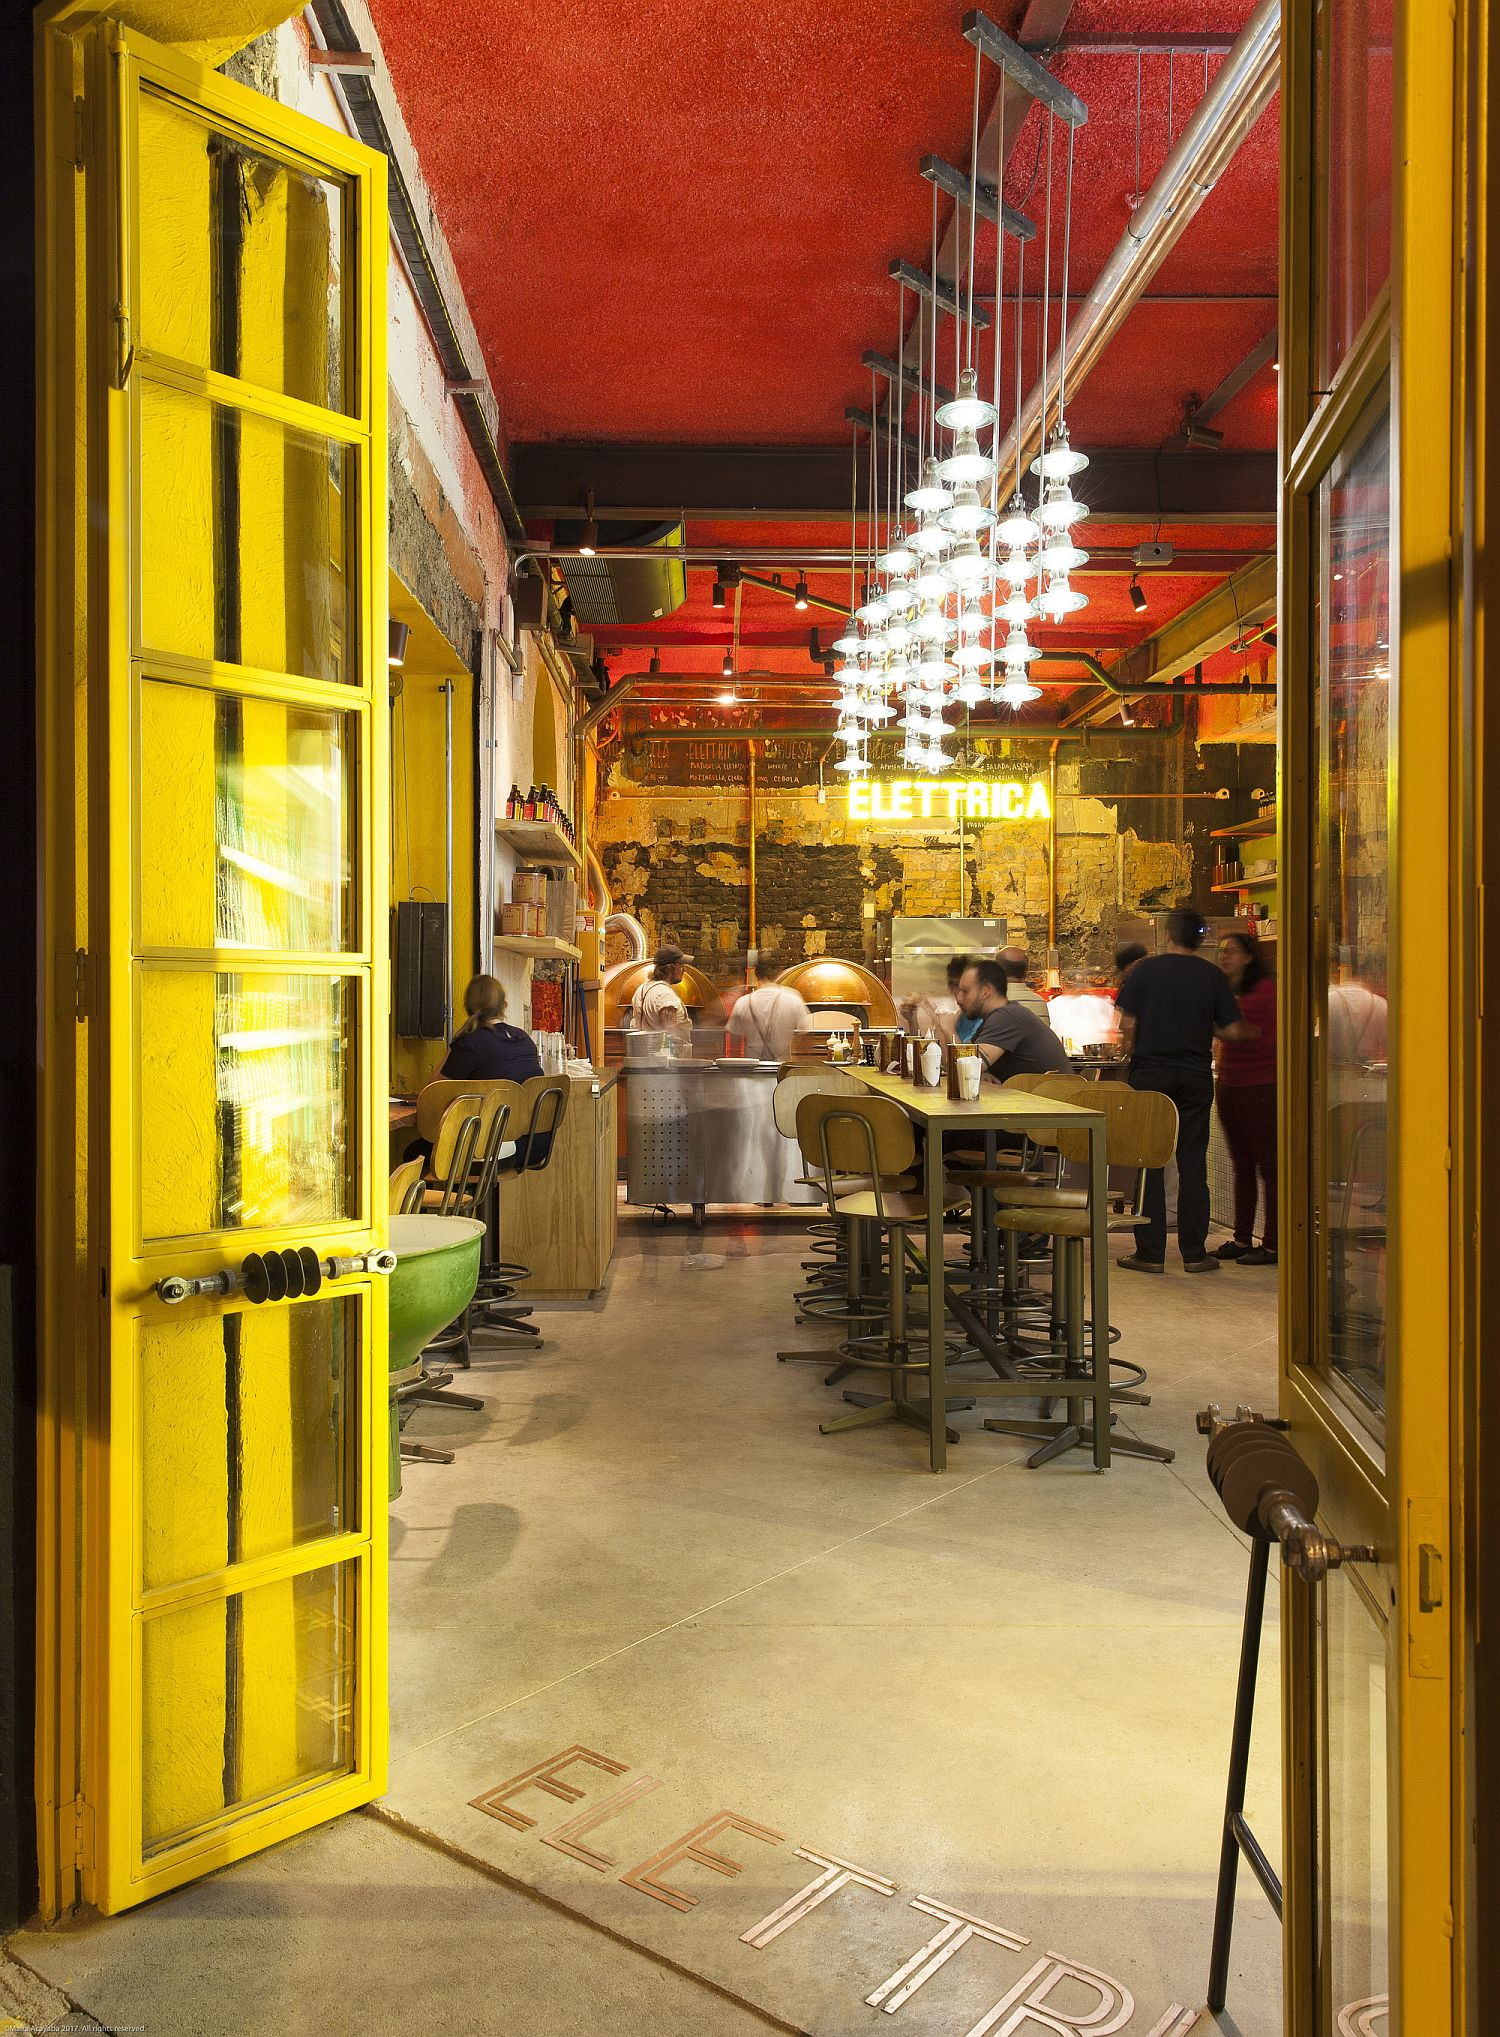 Bráz-Elettrica-Pizza-Restaurant-has-a-casual-and-vibrant-appeal